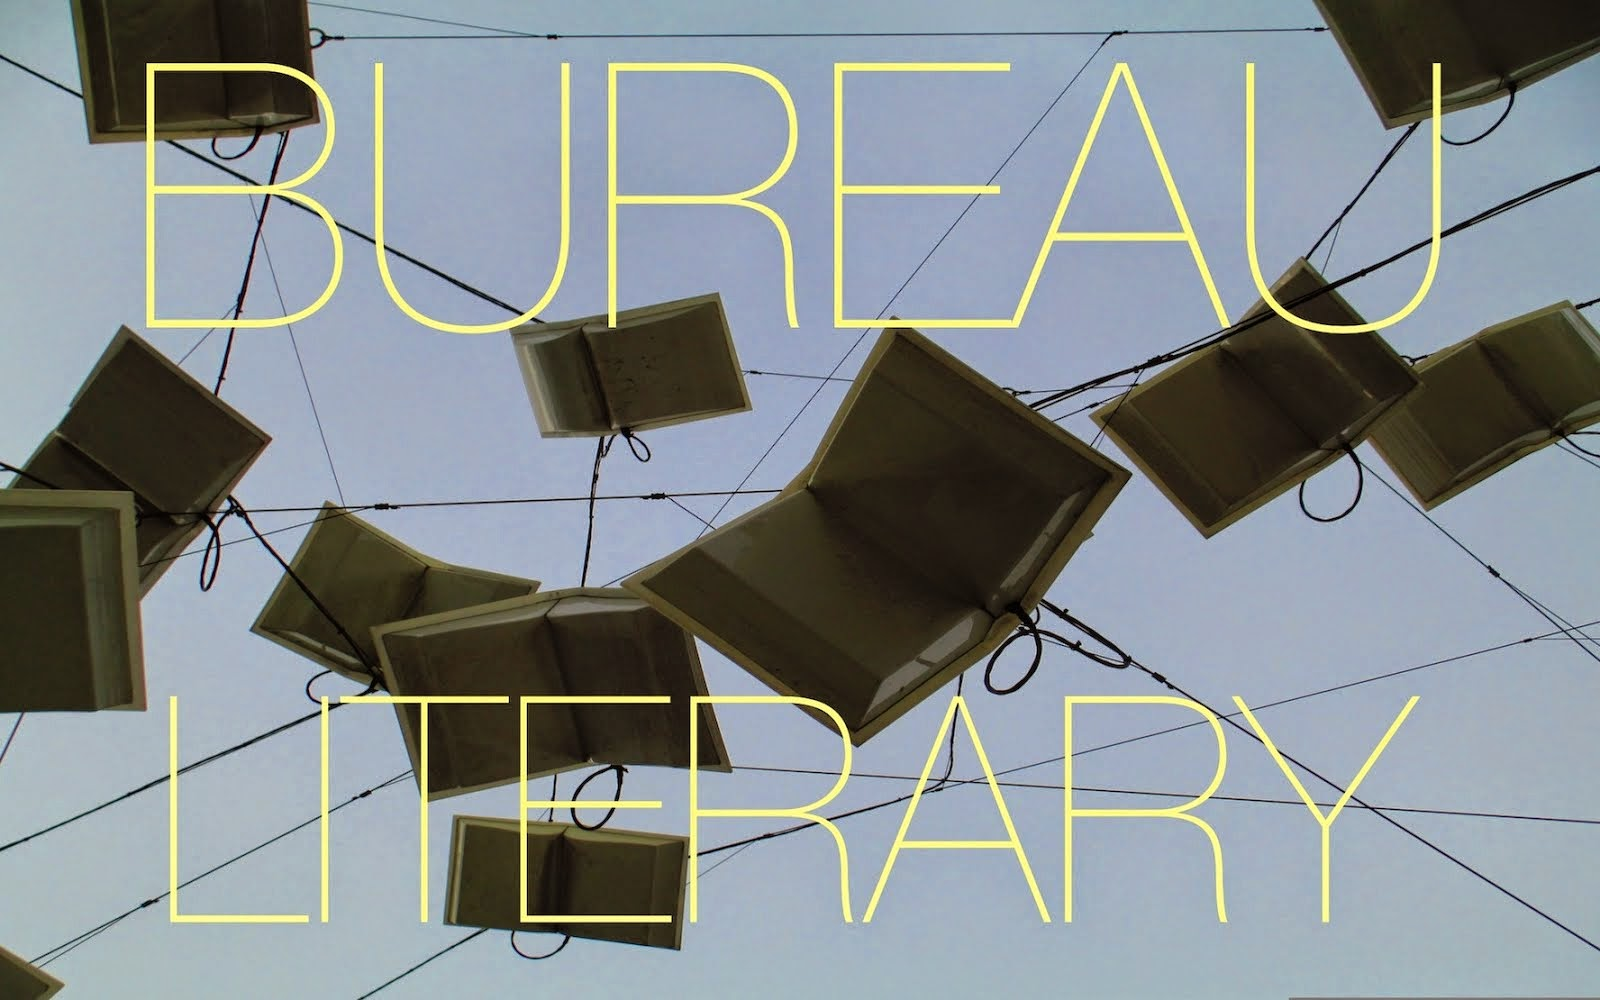 THE BUREAU LITERARY